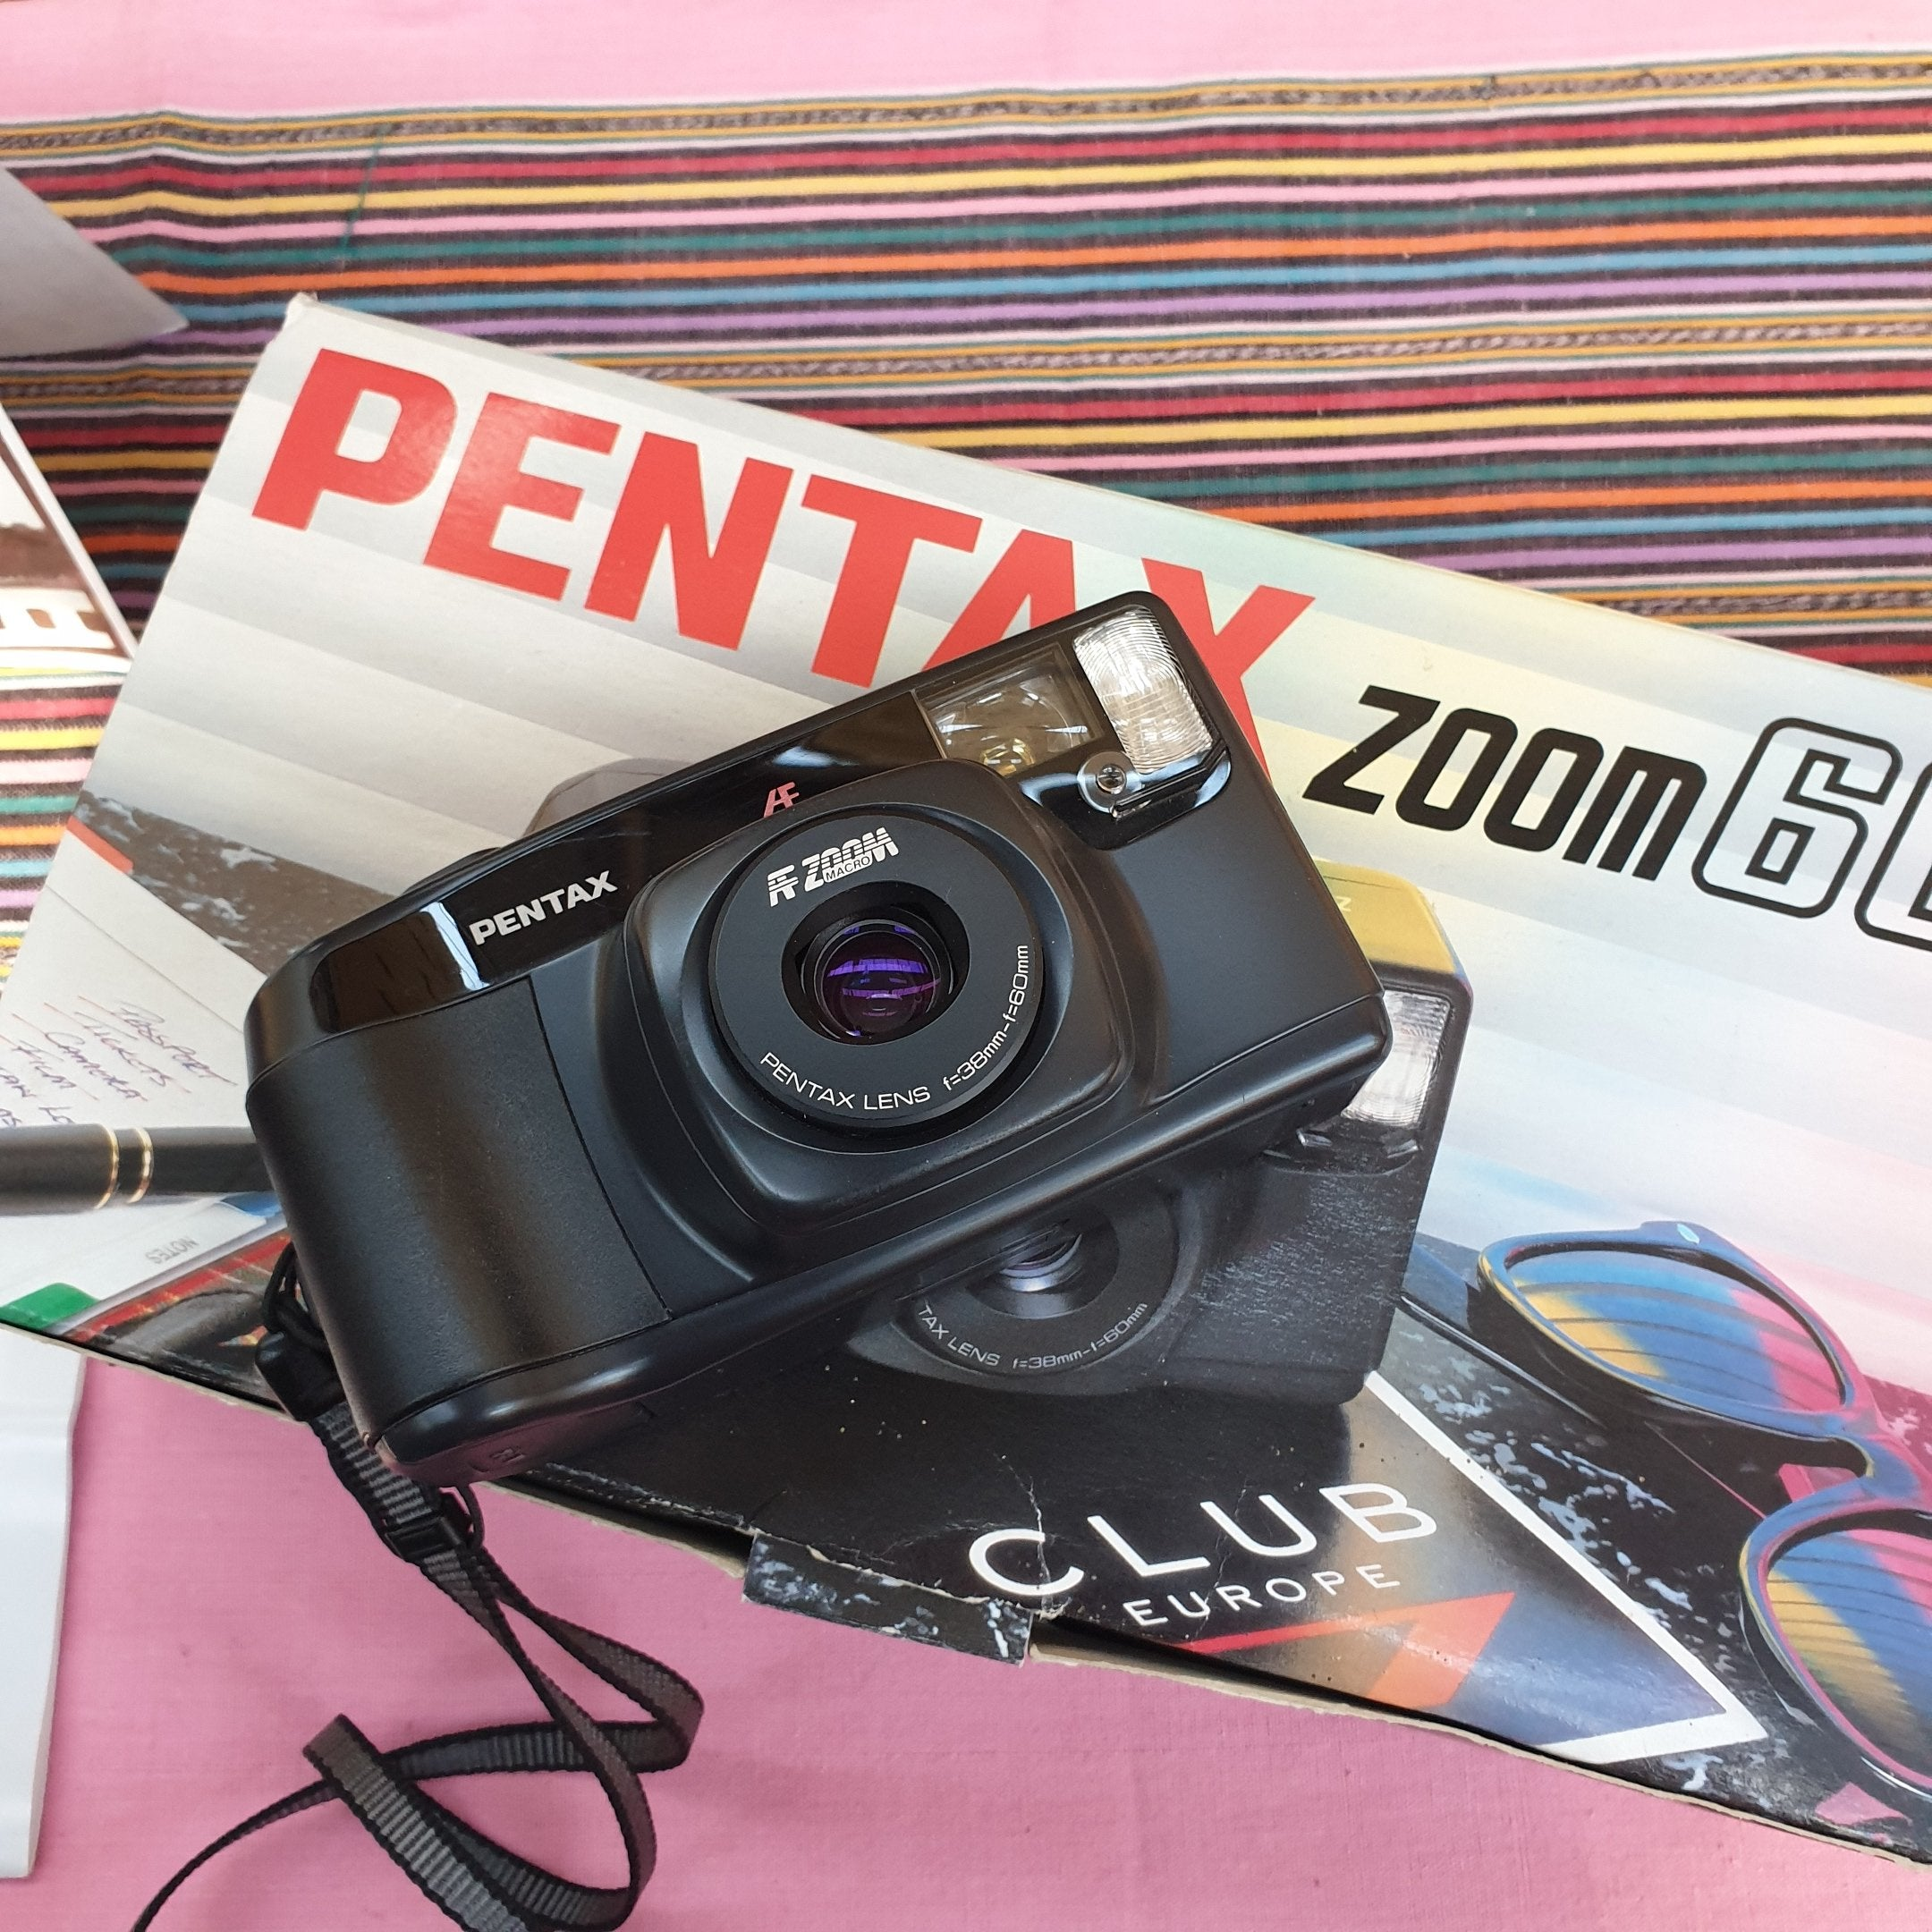 Pentax ZOOM 60 boxed  sn7190616 - Greenwich Cameras and Film